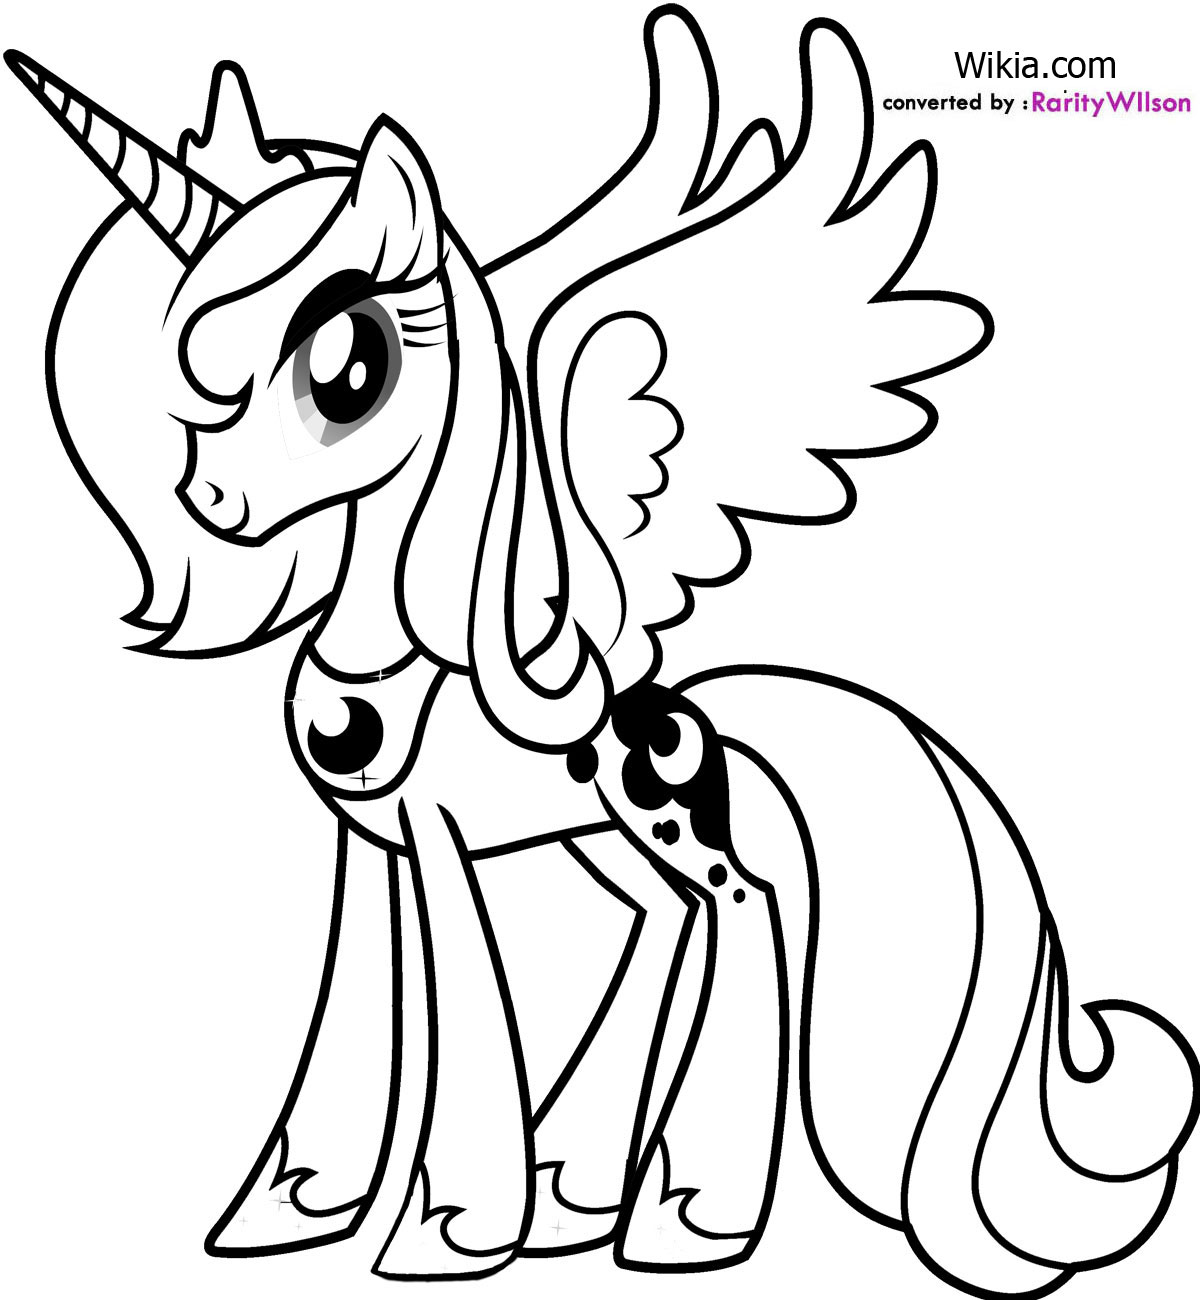 Mlp Human Chibi Coloring Pages Coloring Pages Mlp Coloring Pages Princess Free Coloring Pages